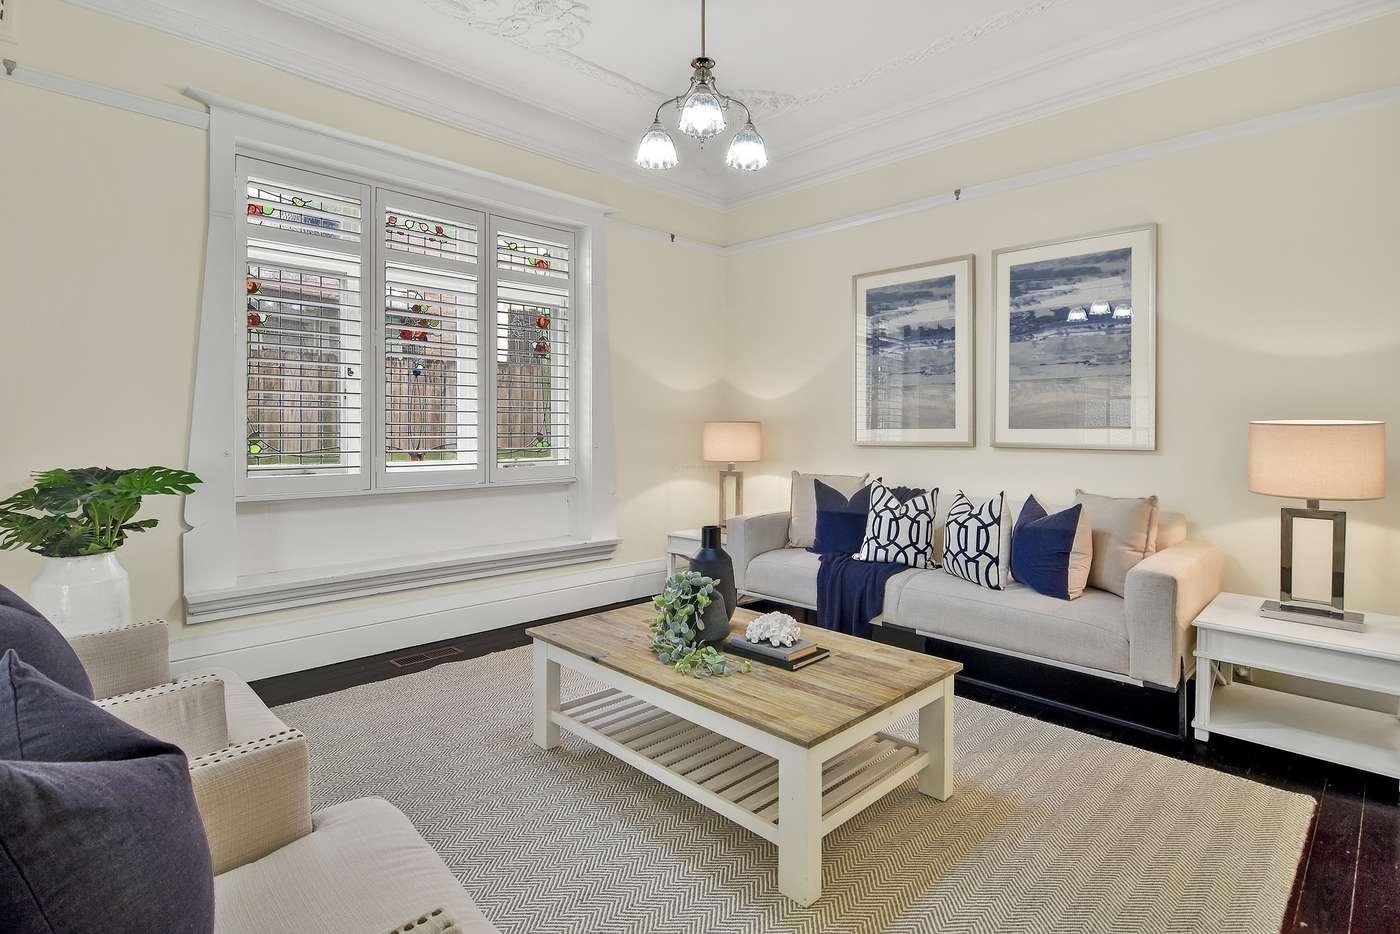 Main view of Homely house listing, 235 Mowbrary Road, Chatswood NSW 2067